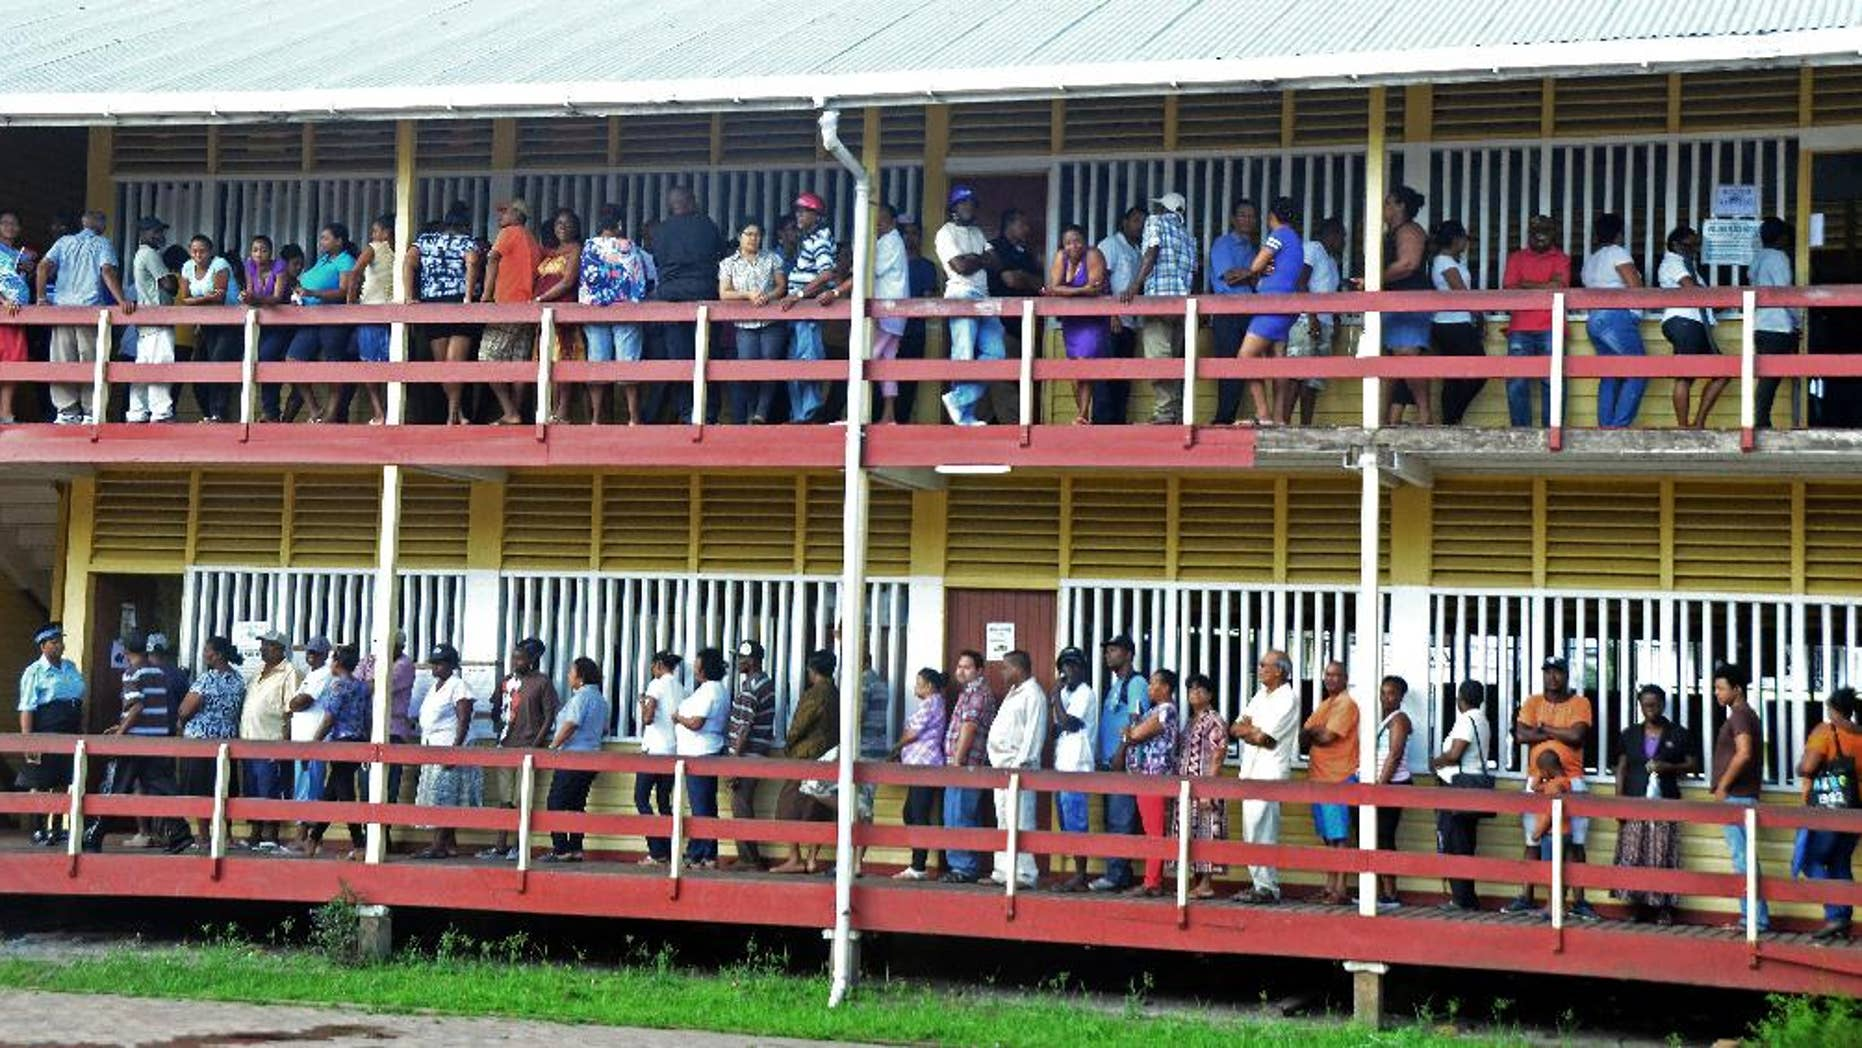 Voters line up to cast their votes at the FE Pollard Primary School in Georgetown, Guyana, Monday, May 11, 2015. A party in power for over two decades in Guyana faced off in general elections Monday against a new coalition of opposition parties that seeks to challenge a tradition of racial politics and accuses the government of mismanagement and corruption. (AP Photo/Adrian Narine)